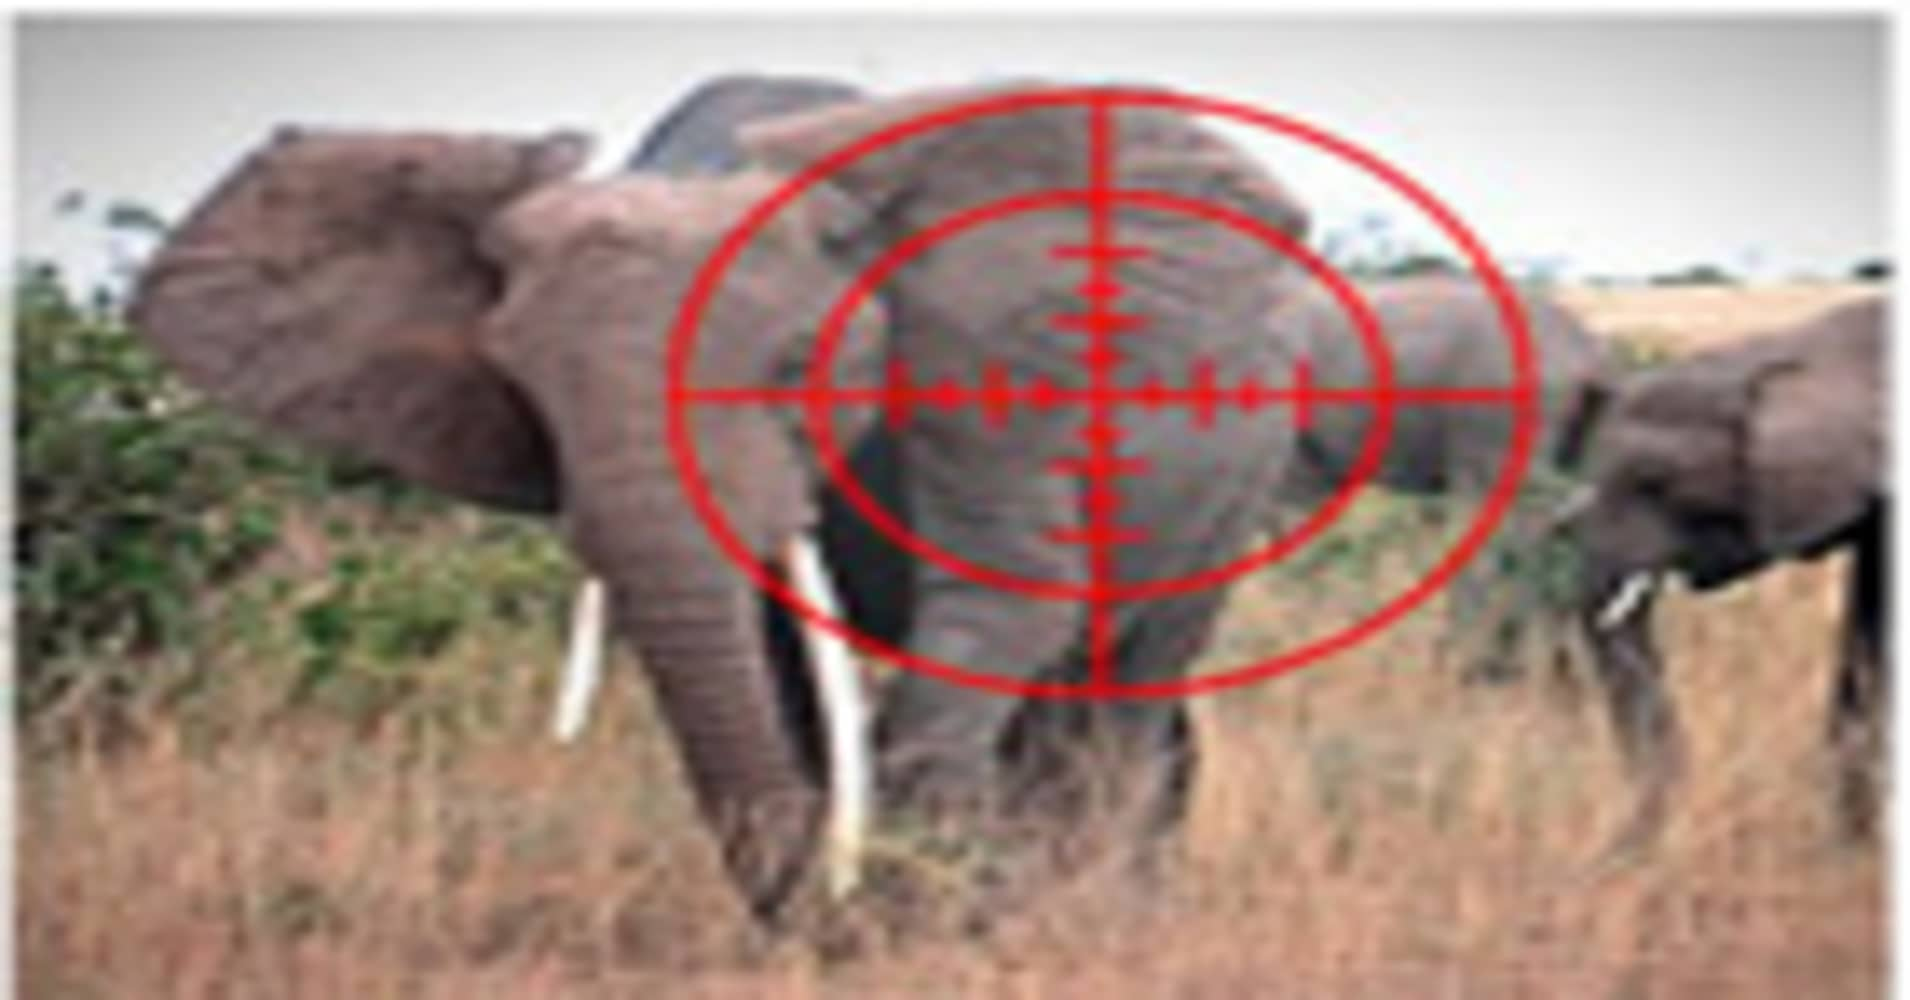 Trump administration once again lifts ban on importing elephant trophies